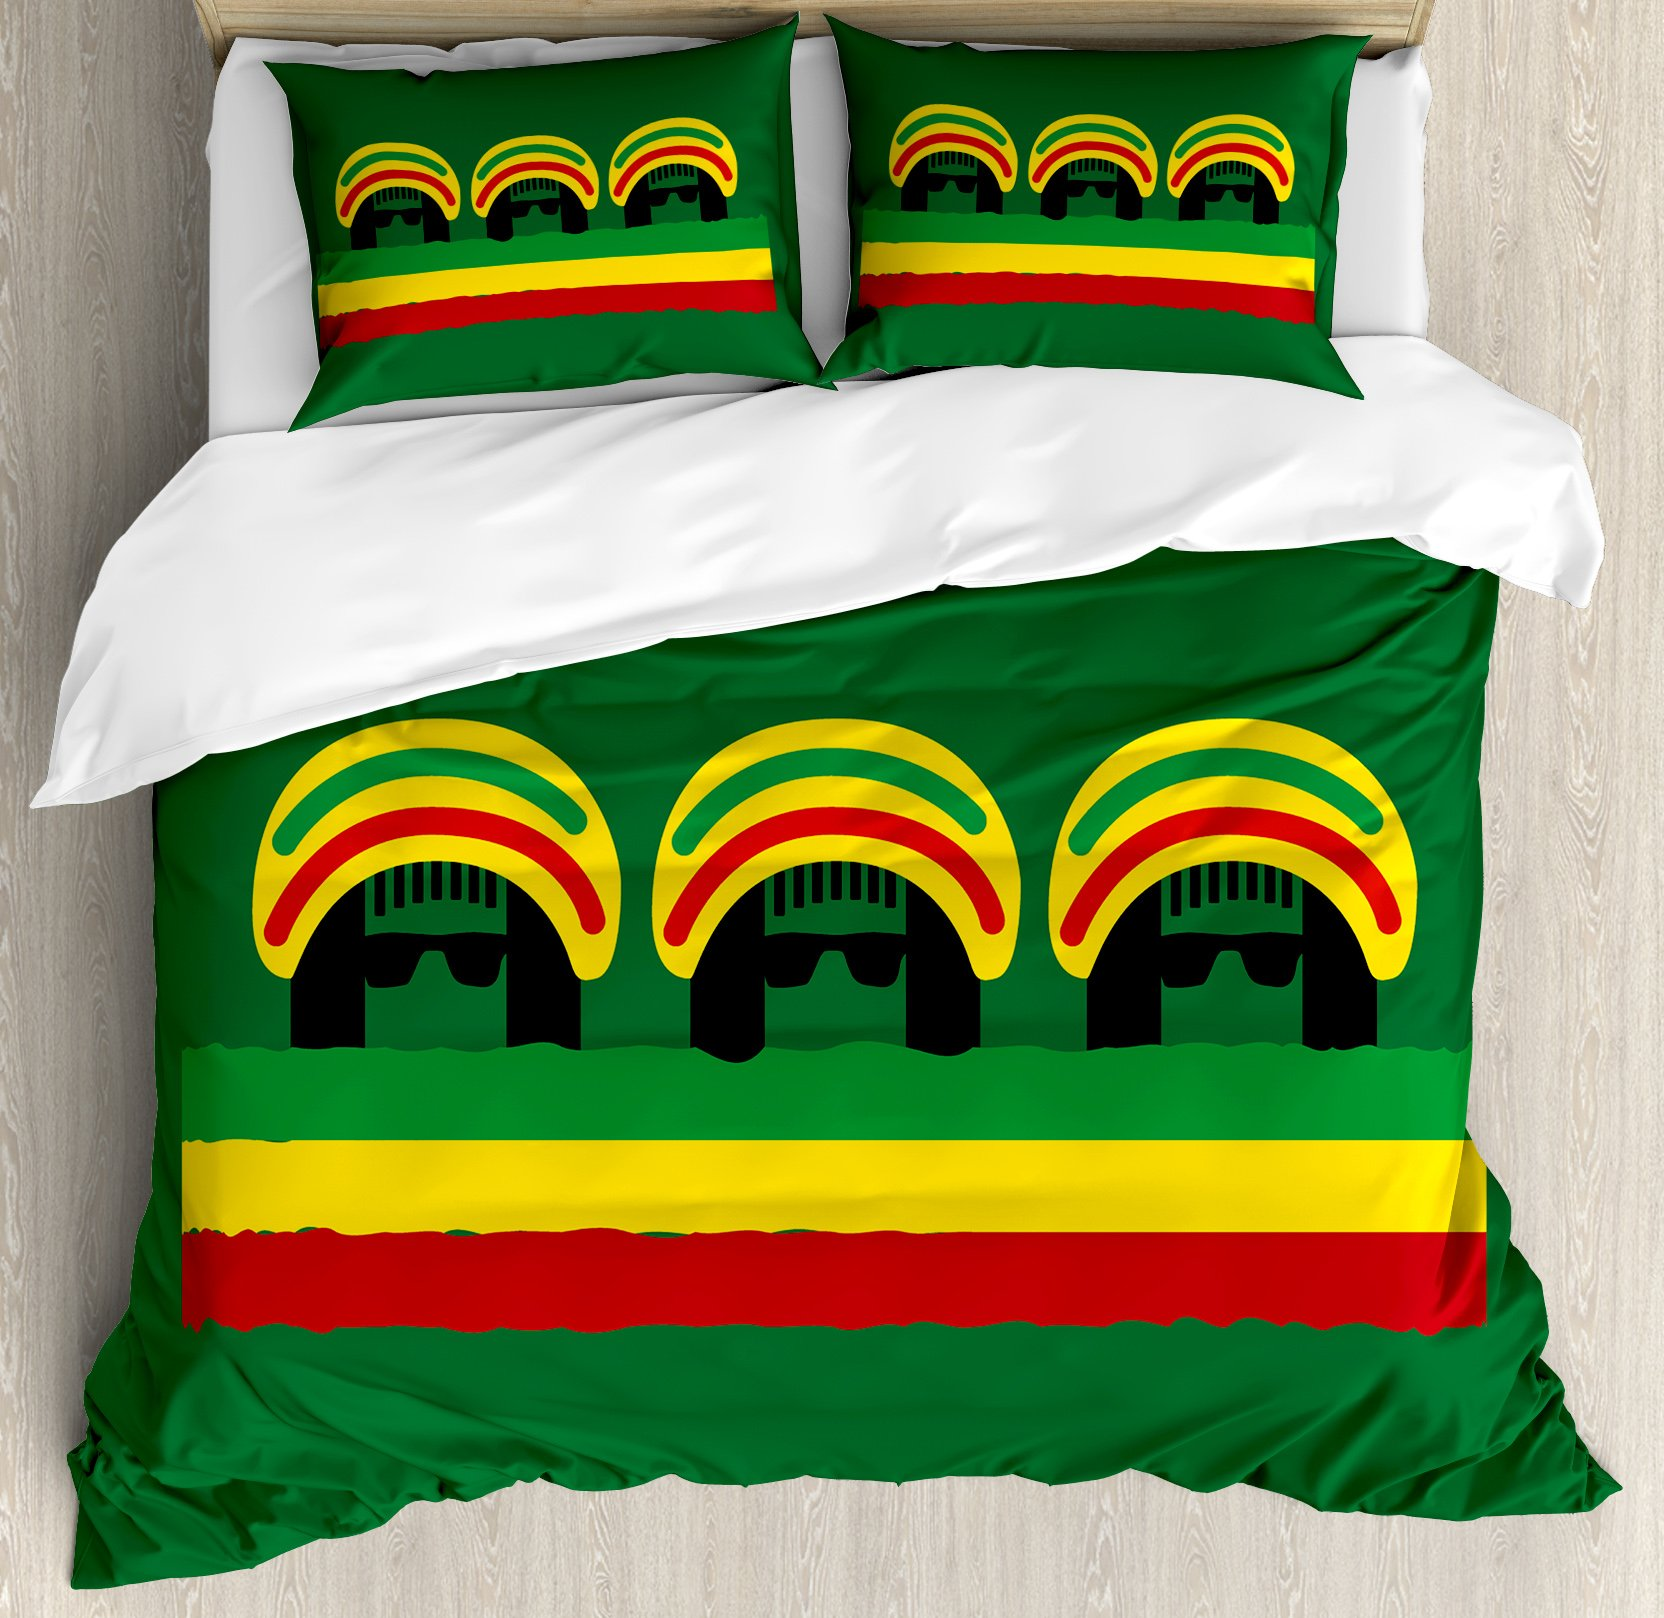 Jamaican Duvet Cover Set Queen Size by Ambesonne, Jamaican Reggae Culture Inspired Minimal Head Shapes with Hats Country Flag, Decorative 3 Piece Bedding Set with 2 Pillow Shams, Green Multicolor